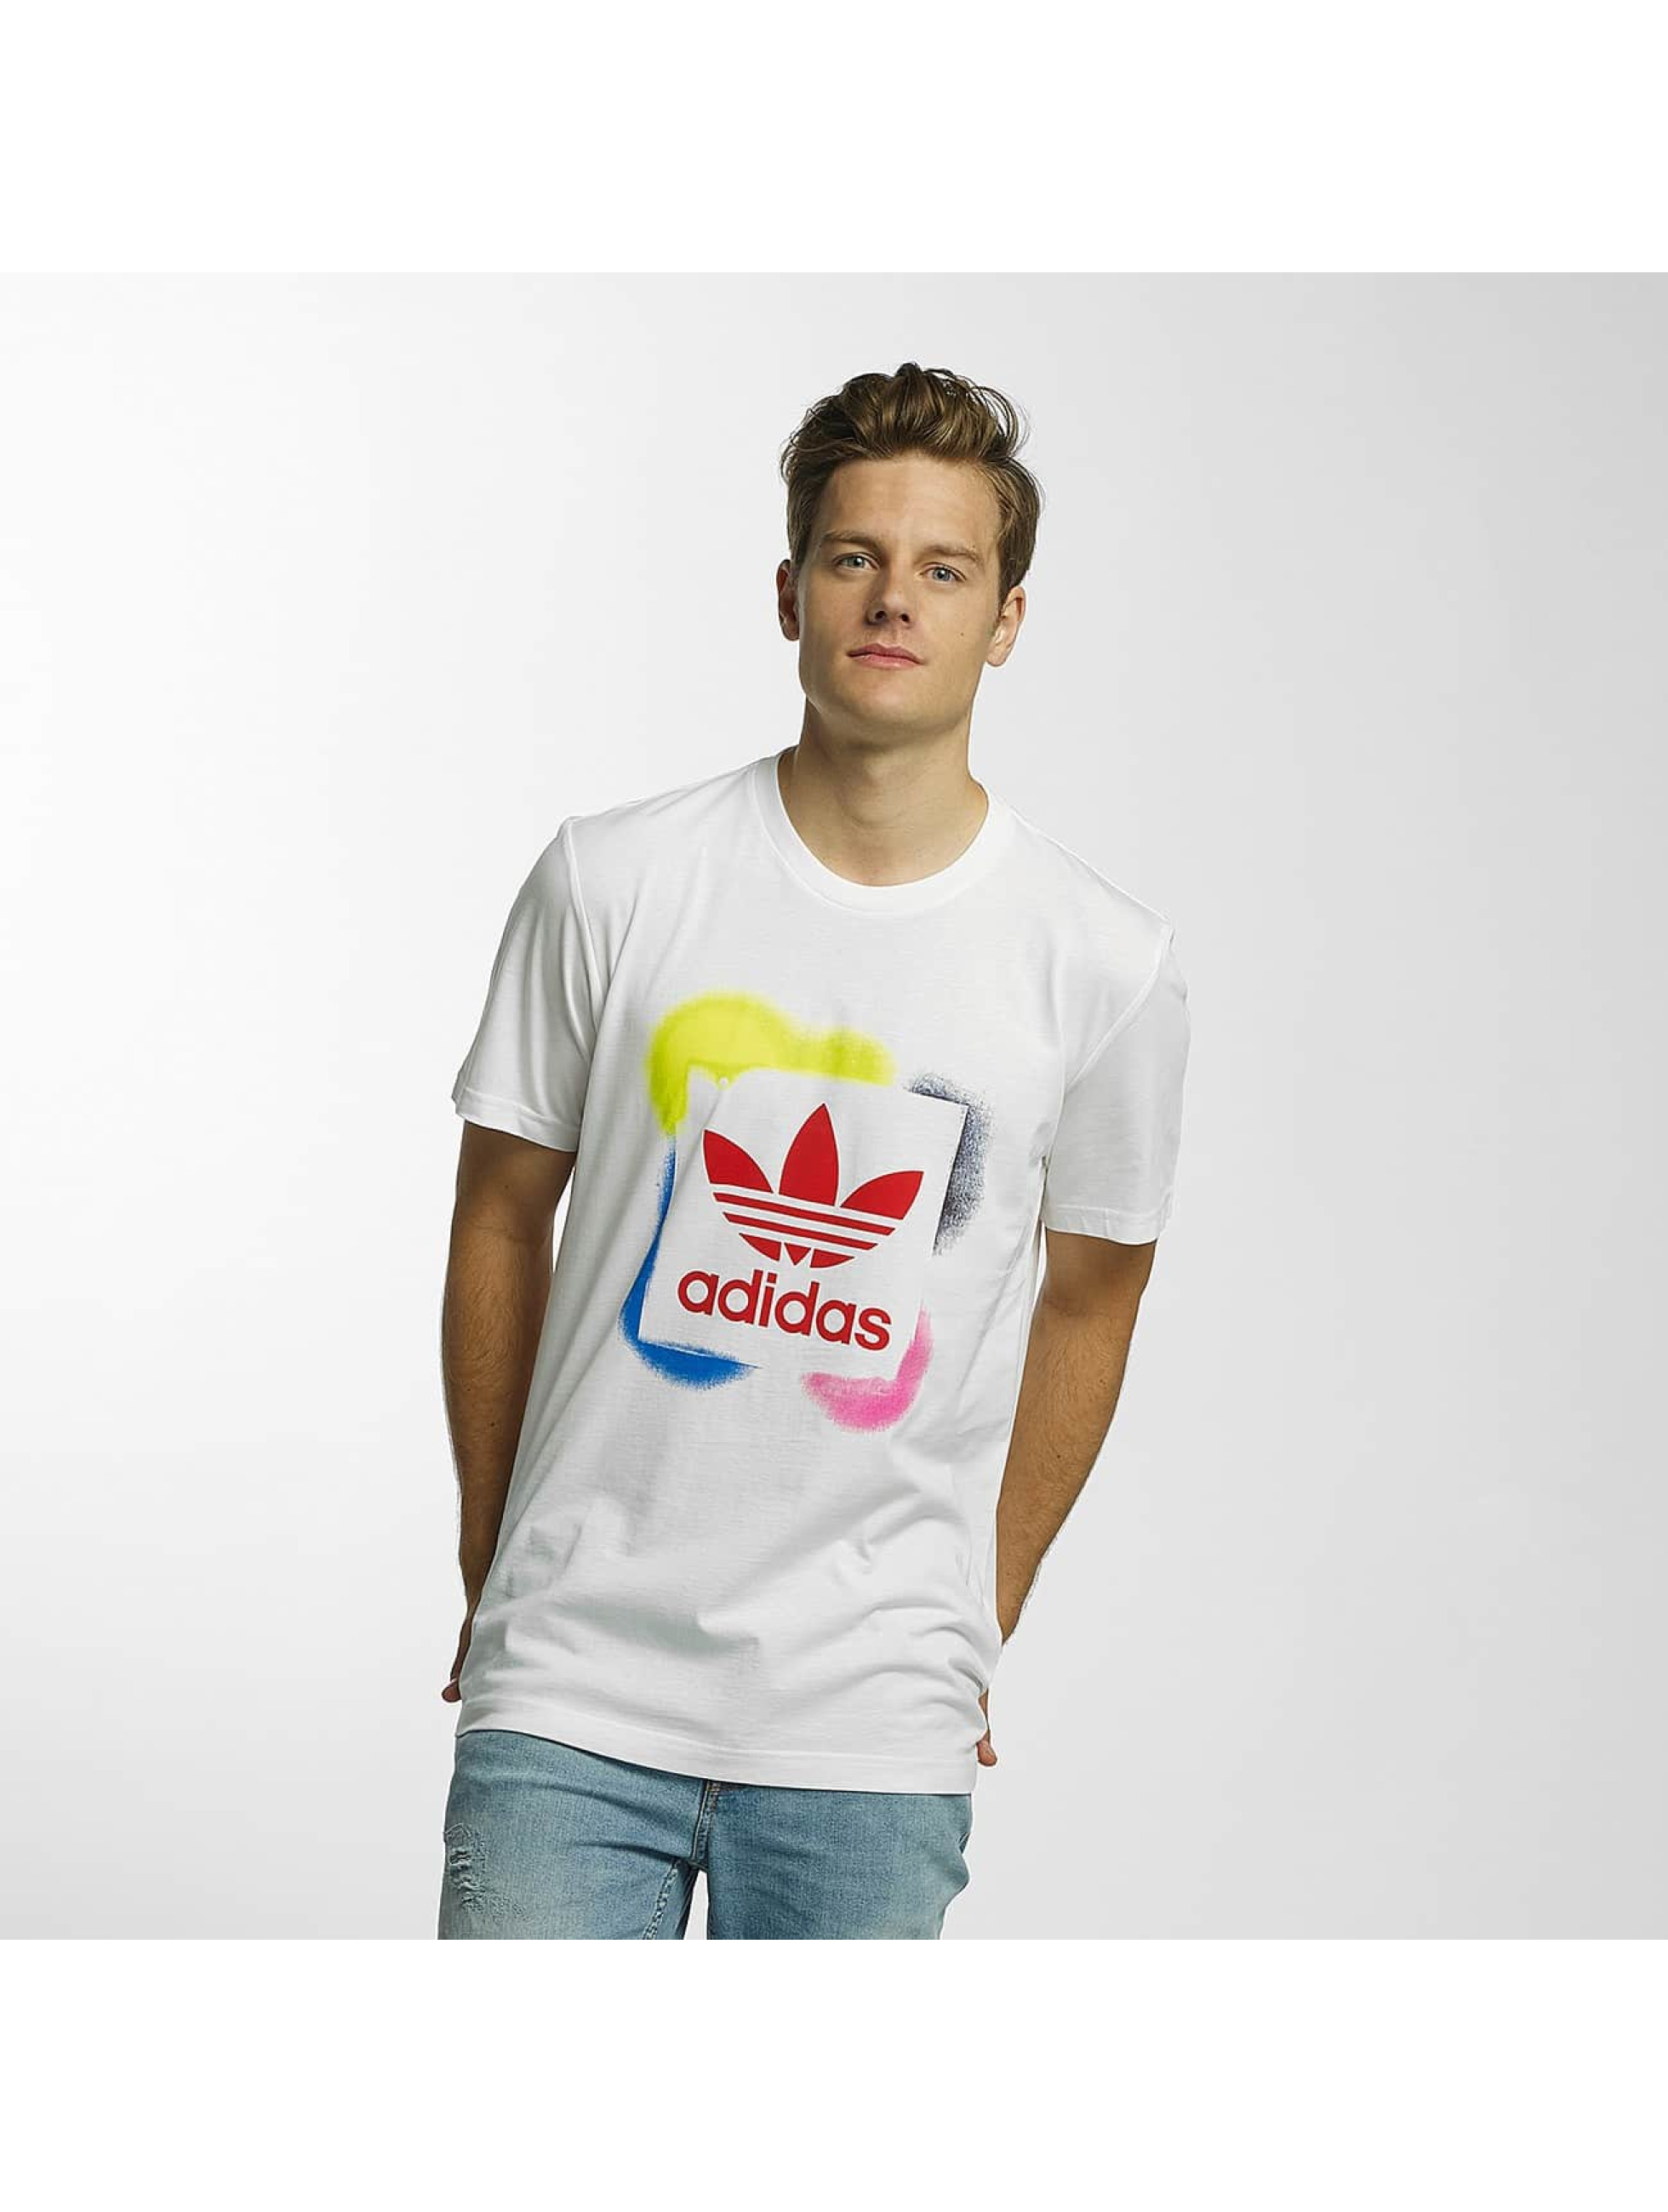 adidas T-Shirty Rectangle 1 bialy